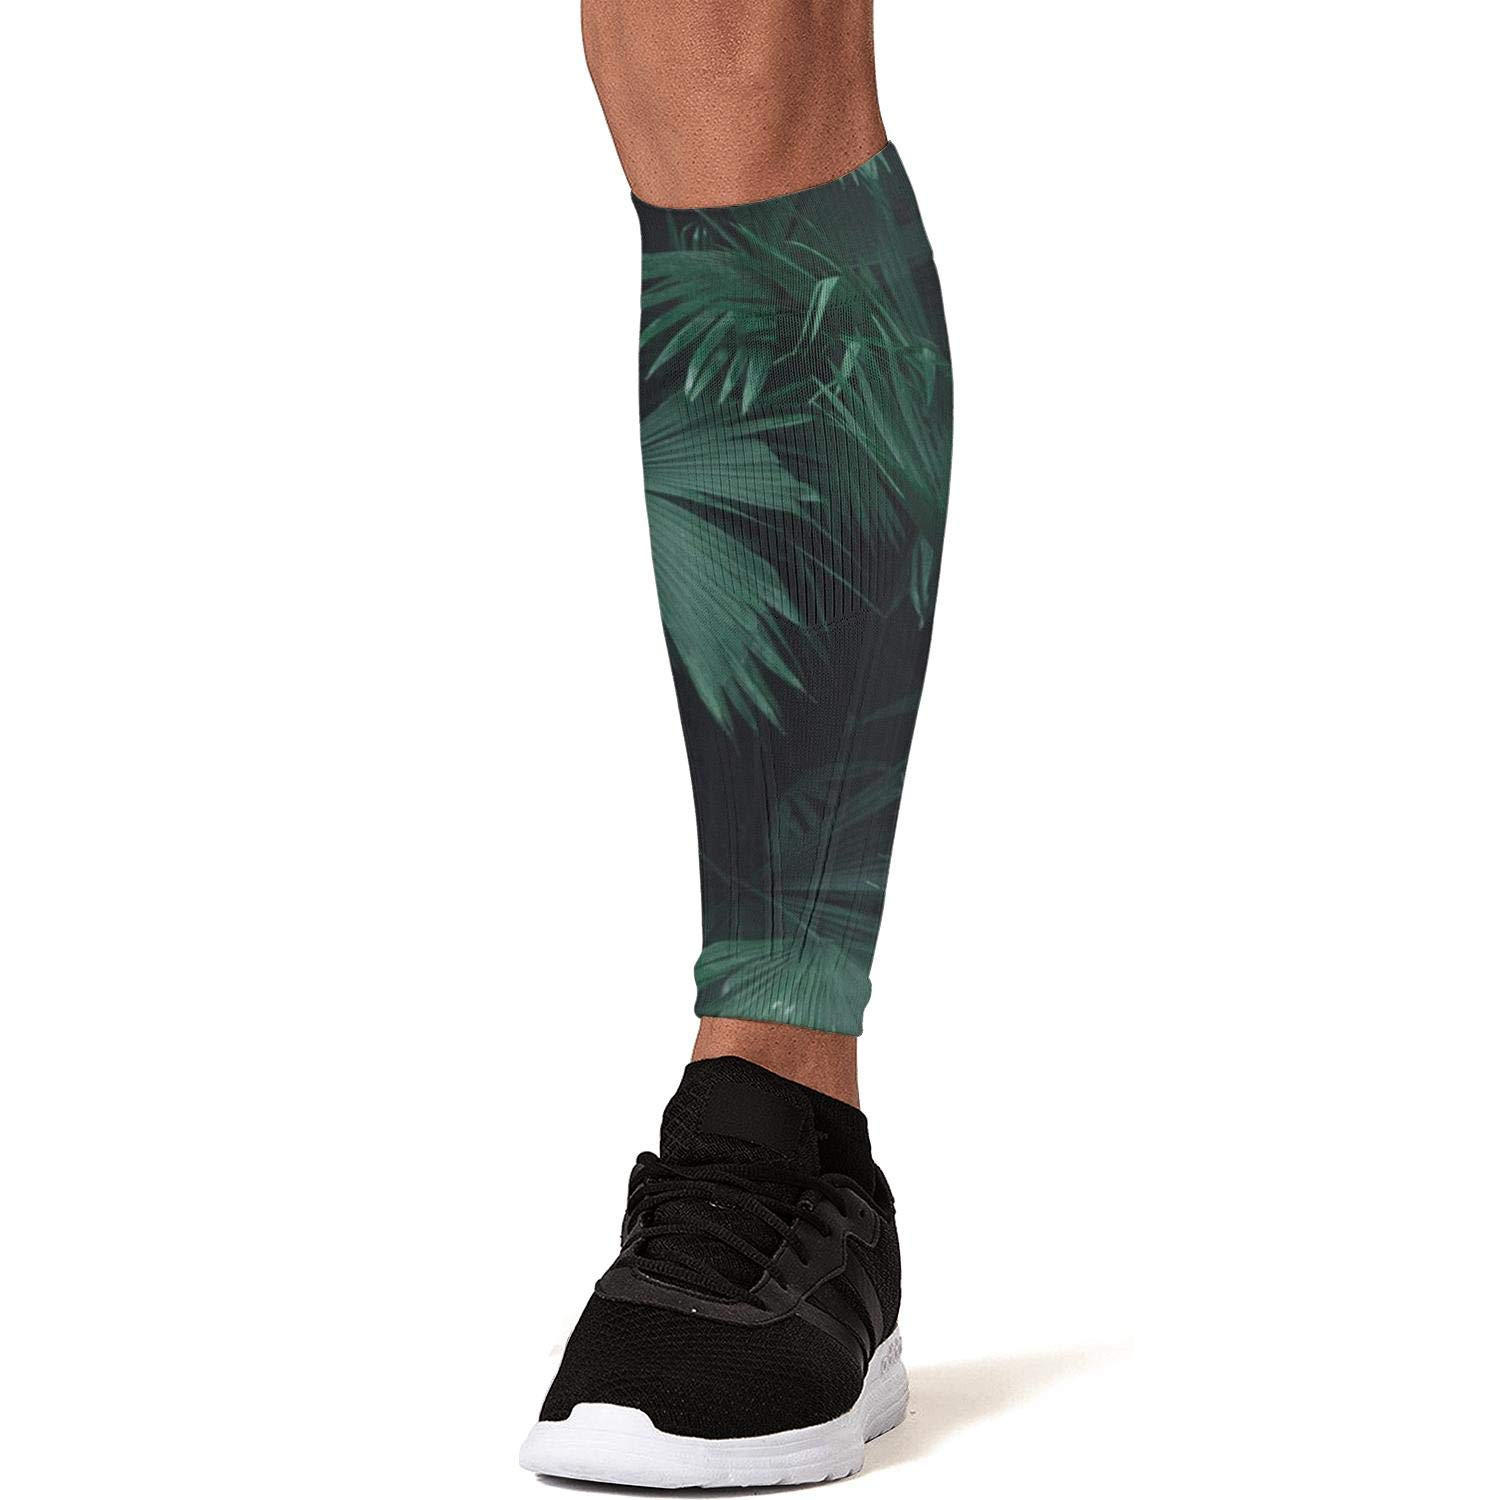 Smilelolly Tropical Jungle Plants Palm Leaf Calf Compression Sleeves Helps Shin Splint Leg Sleeves for Men Women